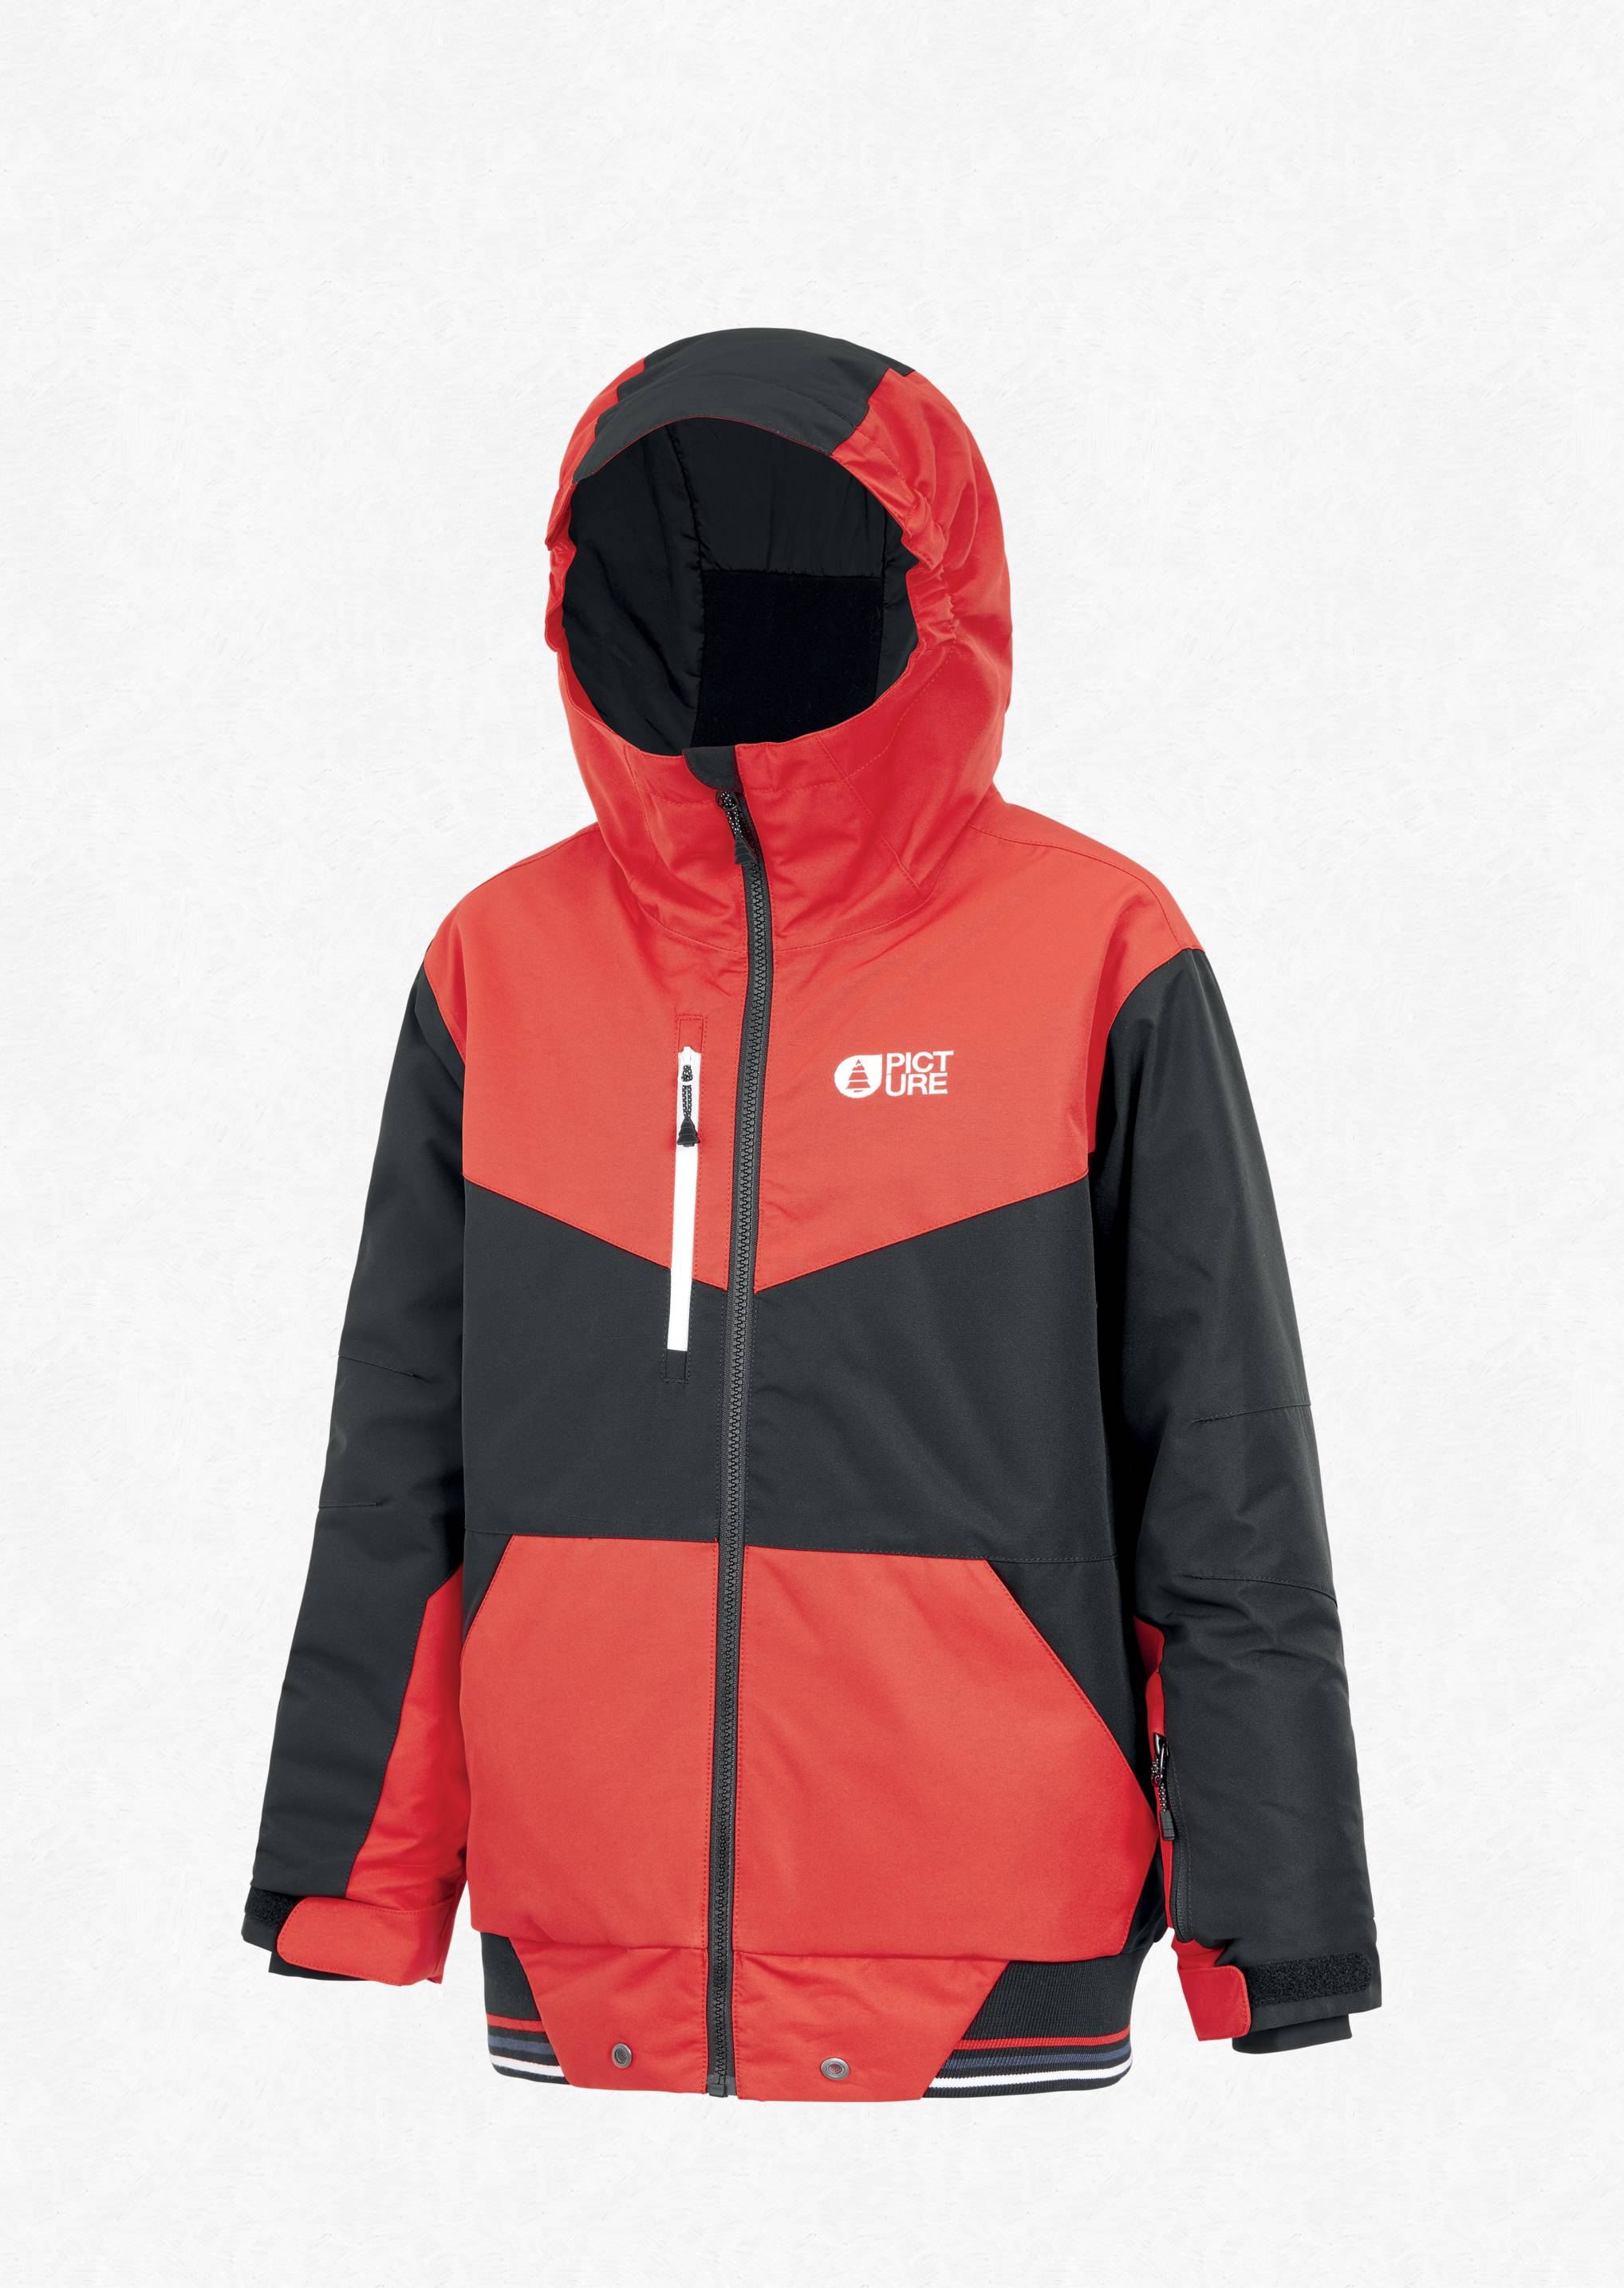 Picture Slope Jacket 2021